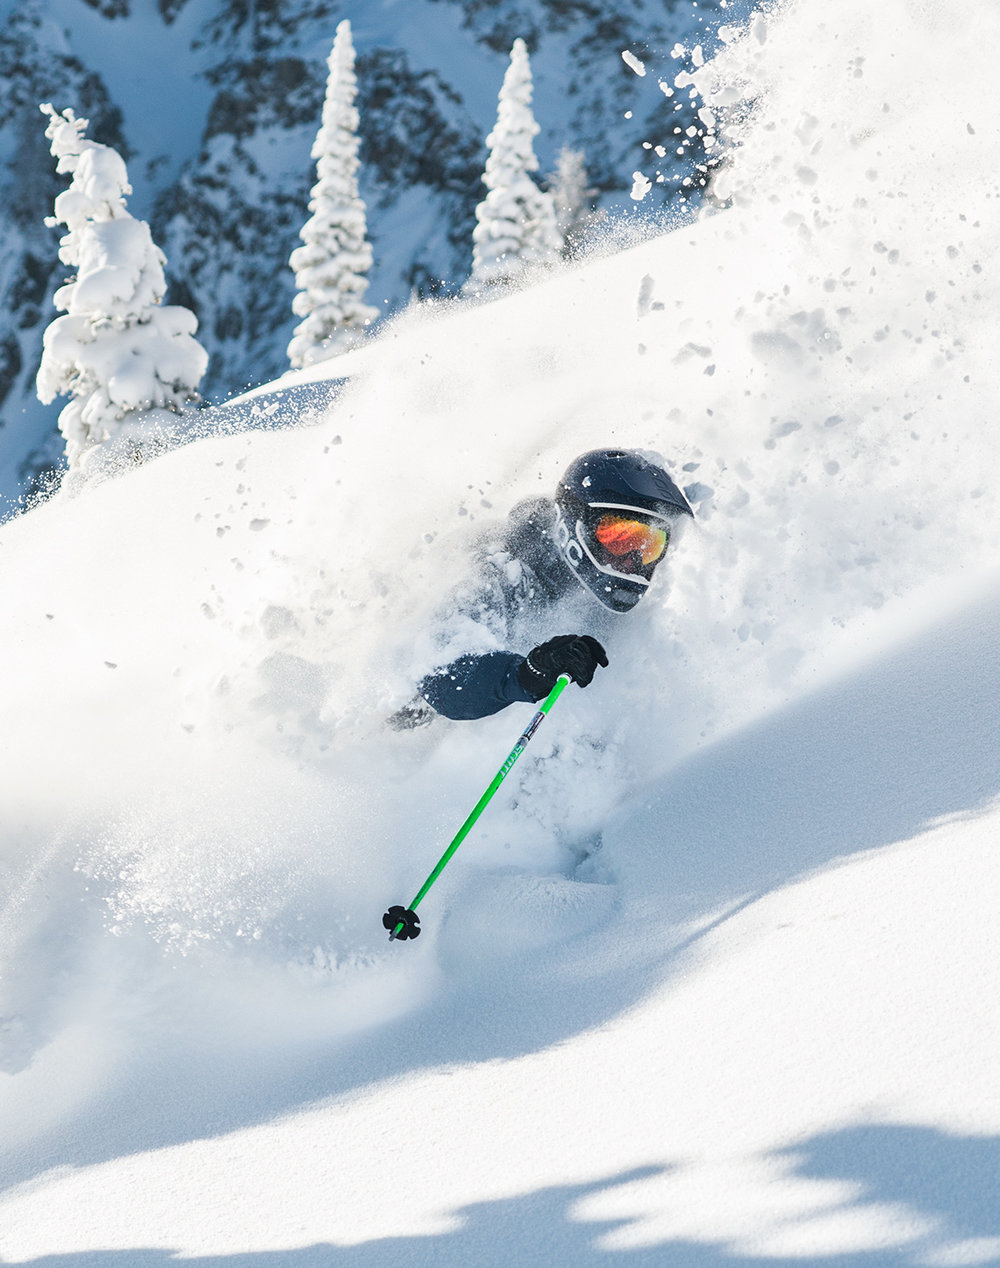 Lane_Peters_Multimedia_Skiing_Jack_Pilot.jpg